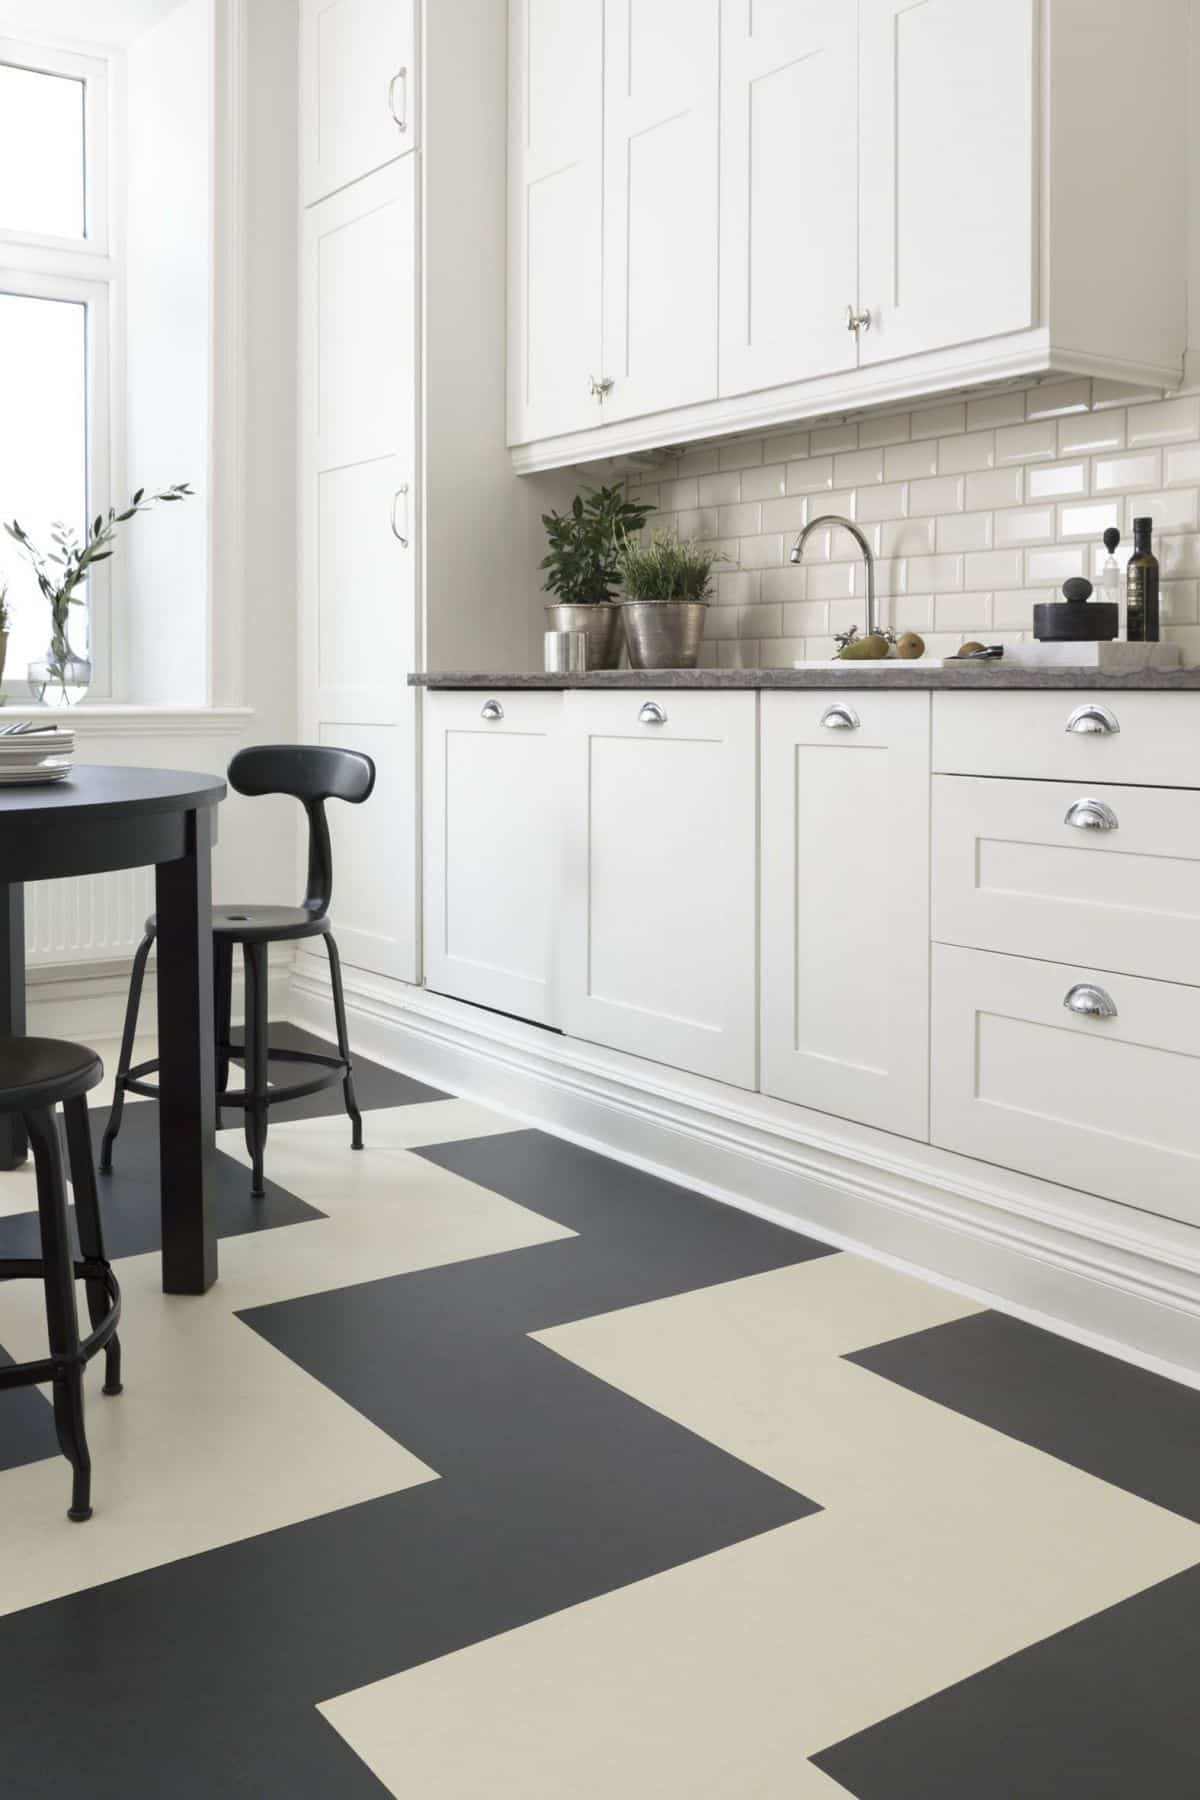 Linoleum floors in the kitchens